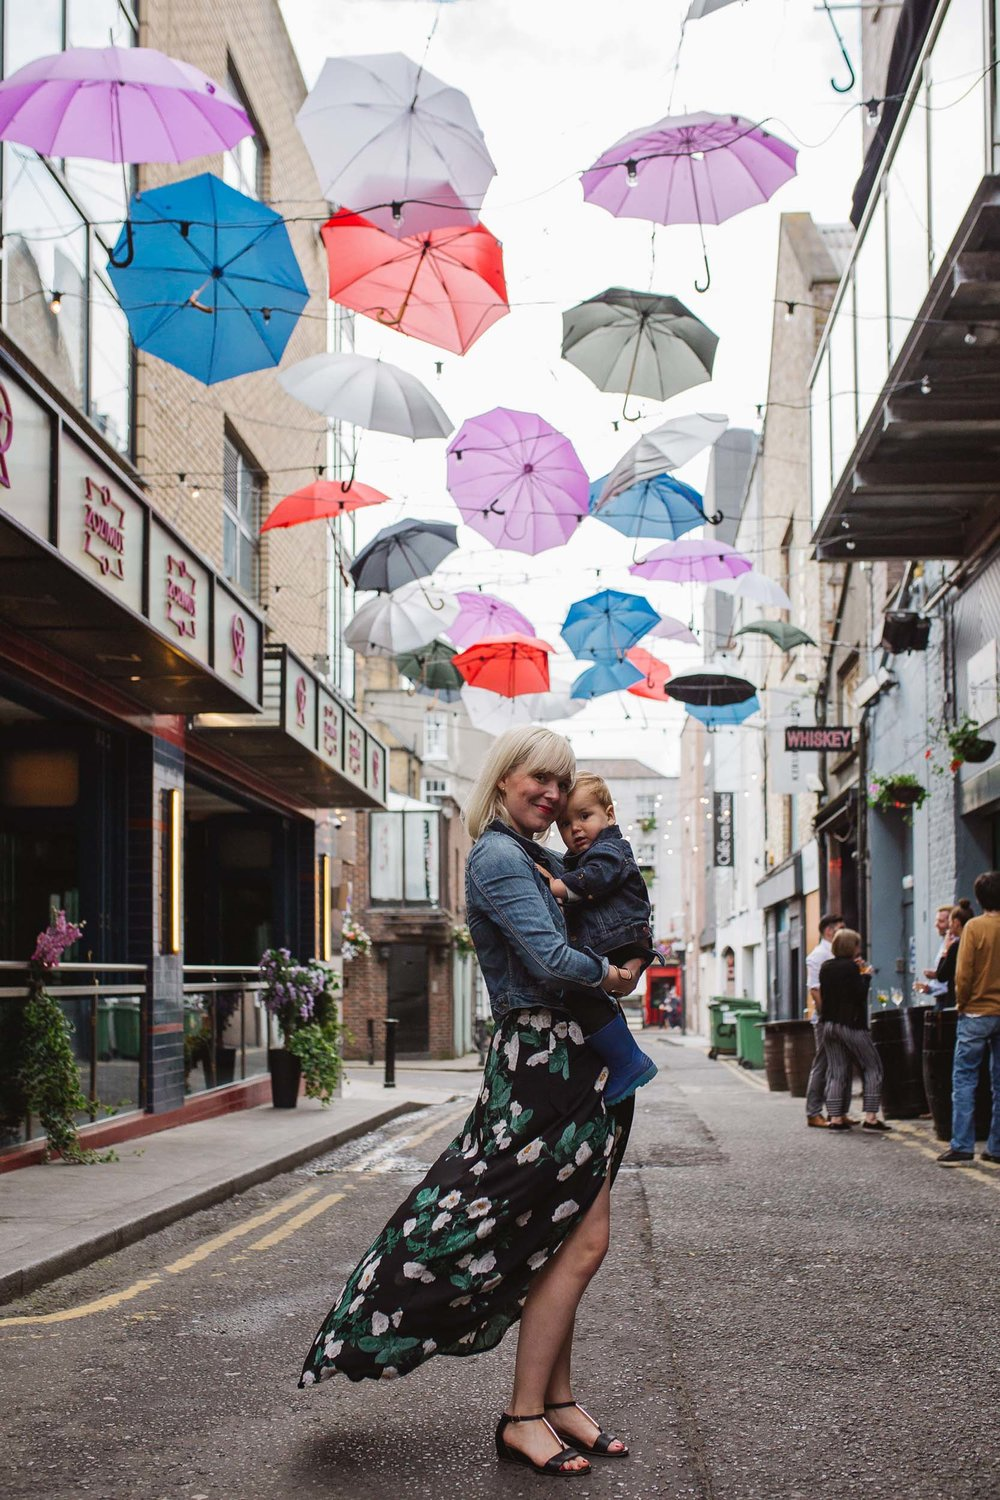 Check out these adorable mom and baby Dublin vacation photos on the Flytographer blog and get inspired for your next vacation!   Travel + Vacation Photographer   Family Vacations   Engagement Proposals   Honeymoons   Anniversary Gifts   Bachelorette Ideas   Solo Traveller Tips    Flytographer captures your travel memories - everything from surprise proposals, honeymoons, family vacations, and more. So often you are missing out of your own photos! Flytographer solves that problem for you. Our photographers also act as informal tour guides and provide fun local tips to our customers, showing them an area of a city they may not have explored without Flytographer. Book your photographer at 1.888.211.7178 or visit our website at www.flytographer.com/book